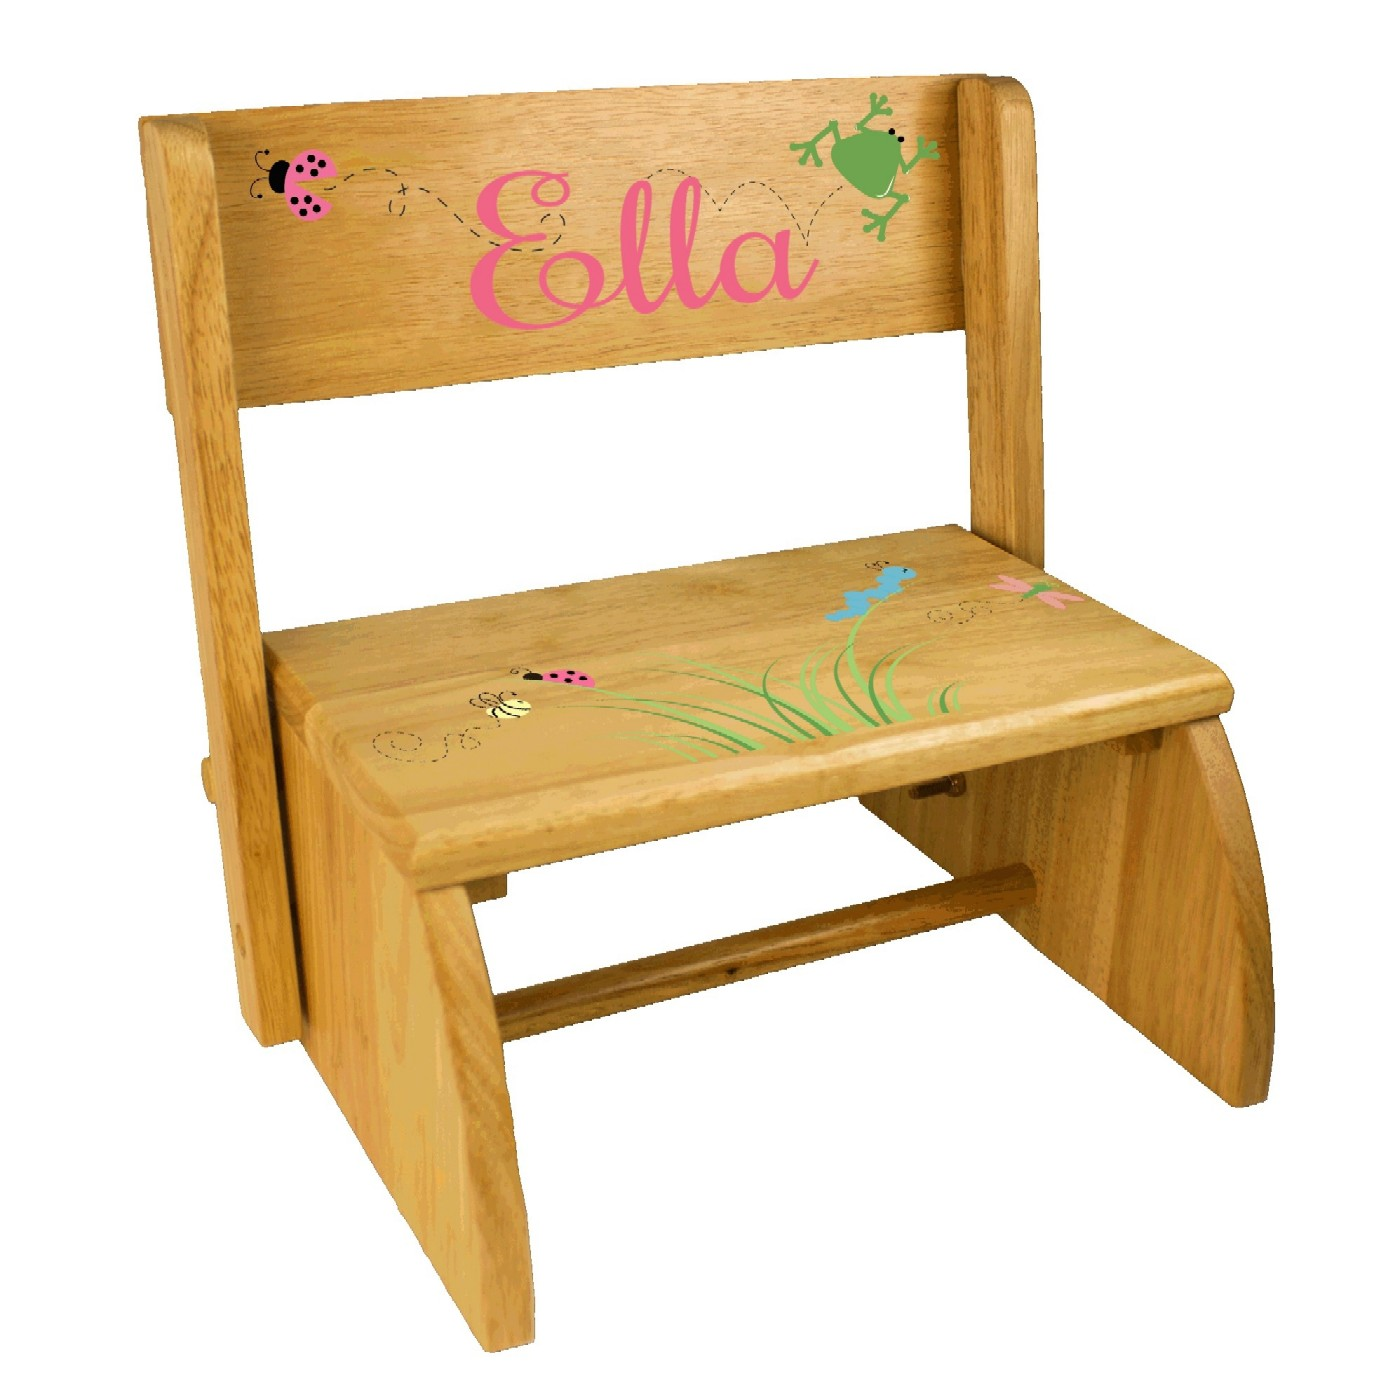 Personalized Kids Step Stools | SimplyUniqueBabyGifts.com | Free Shipping  sc 1 st  Simply Unique Baby Gifts : wooden step stool for kids personalized - islam-shia.org